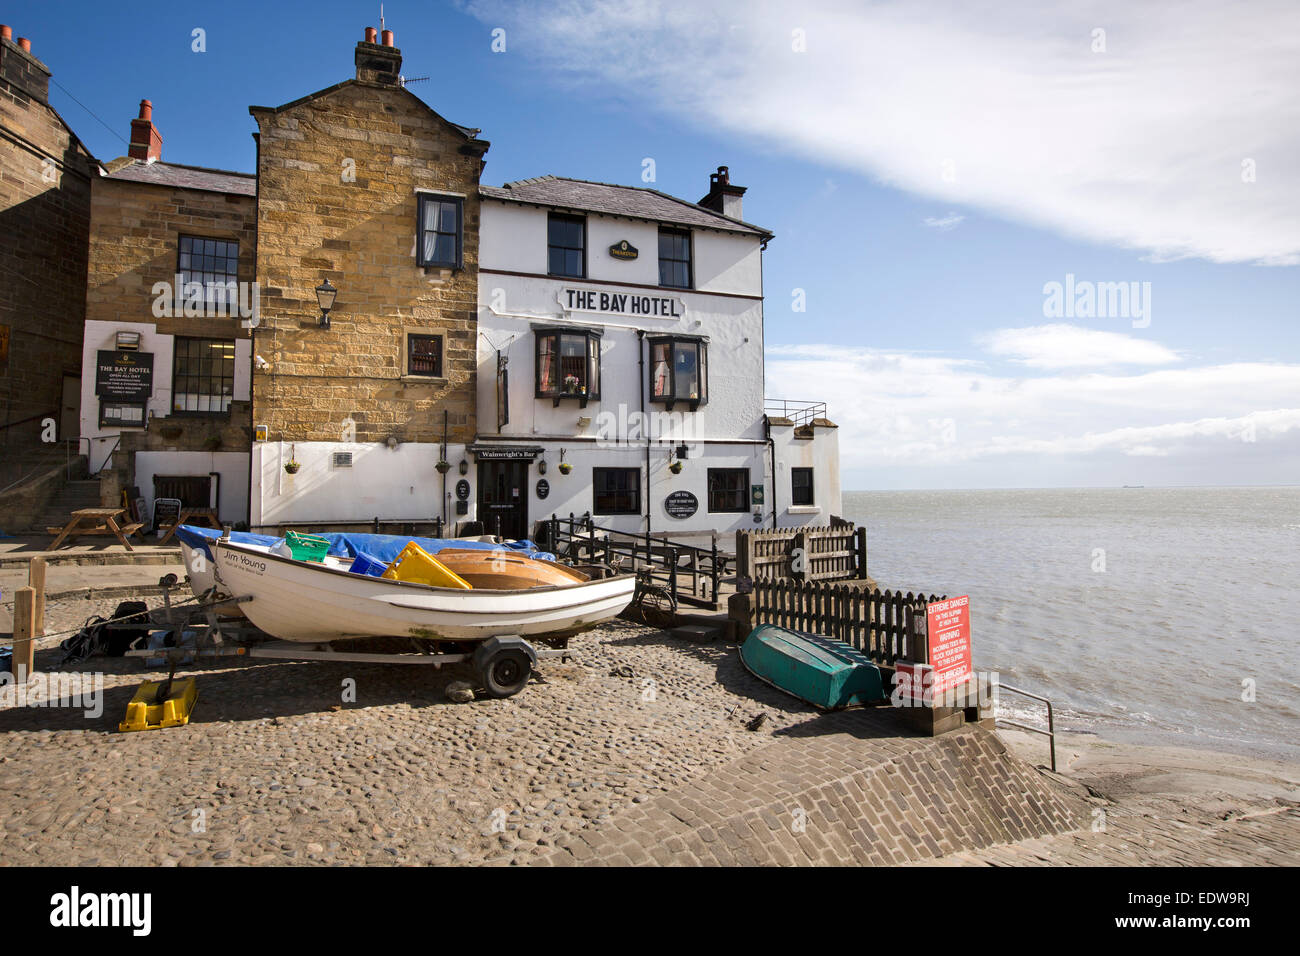 UK, England, Yorkshire, Robin Hood's Bay, Lower Village, boats outside the Bay Hotel - Stock Image